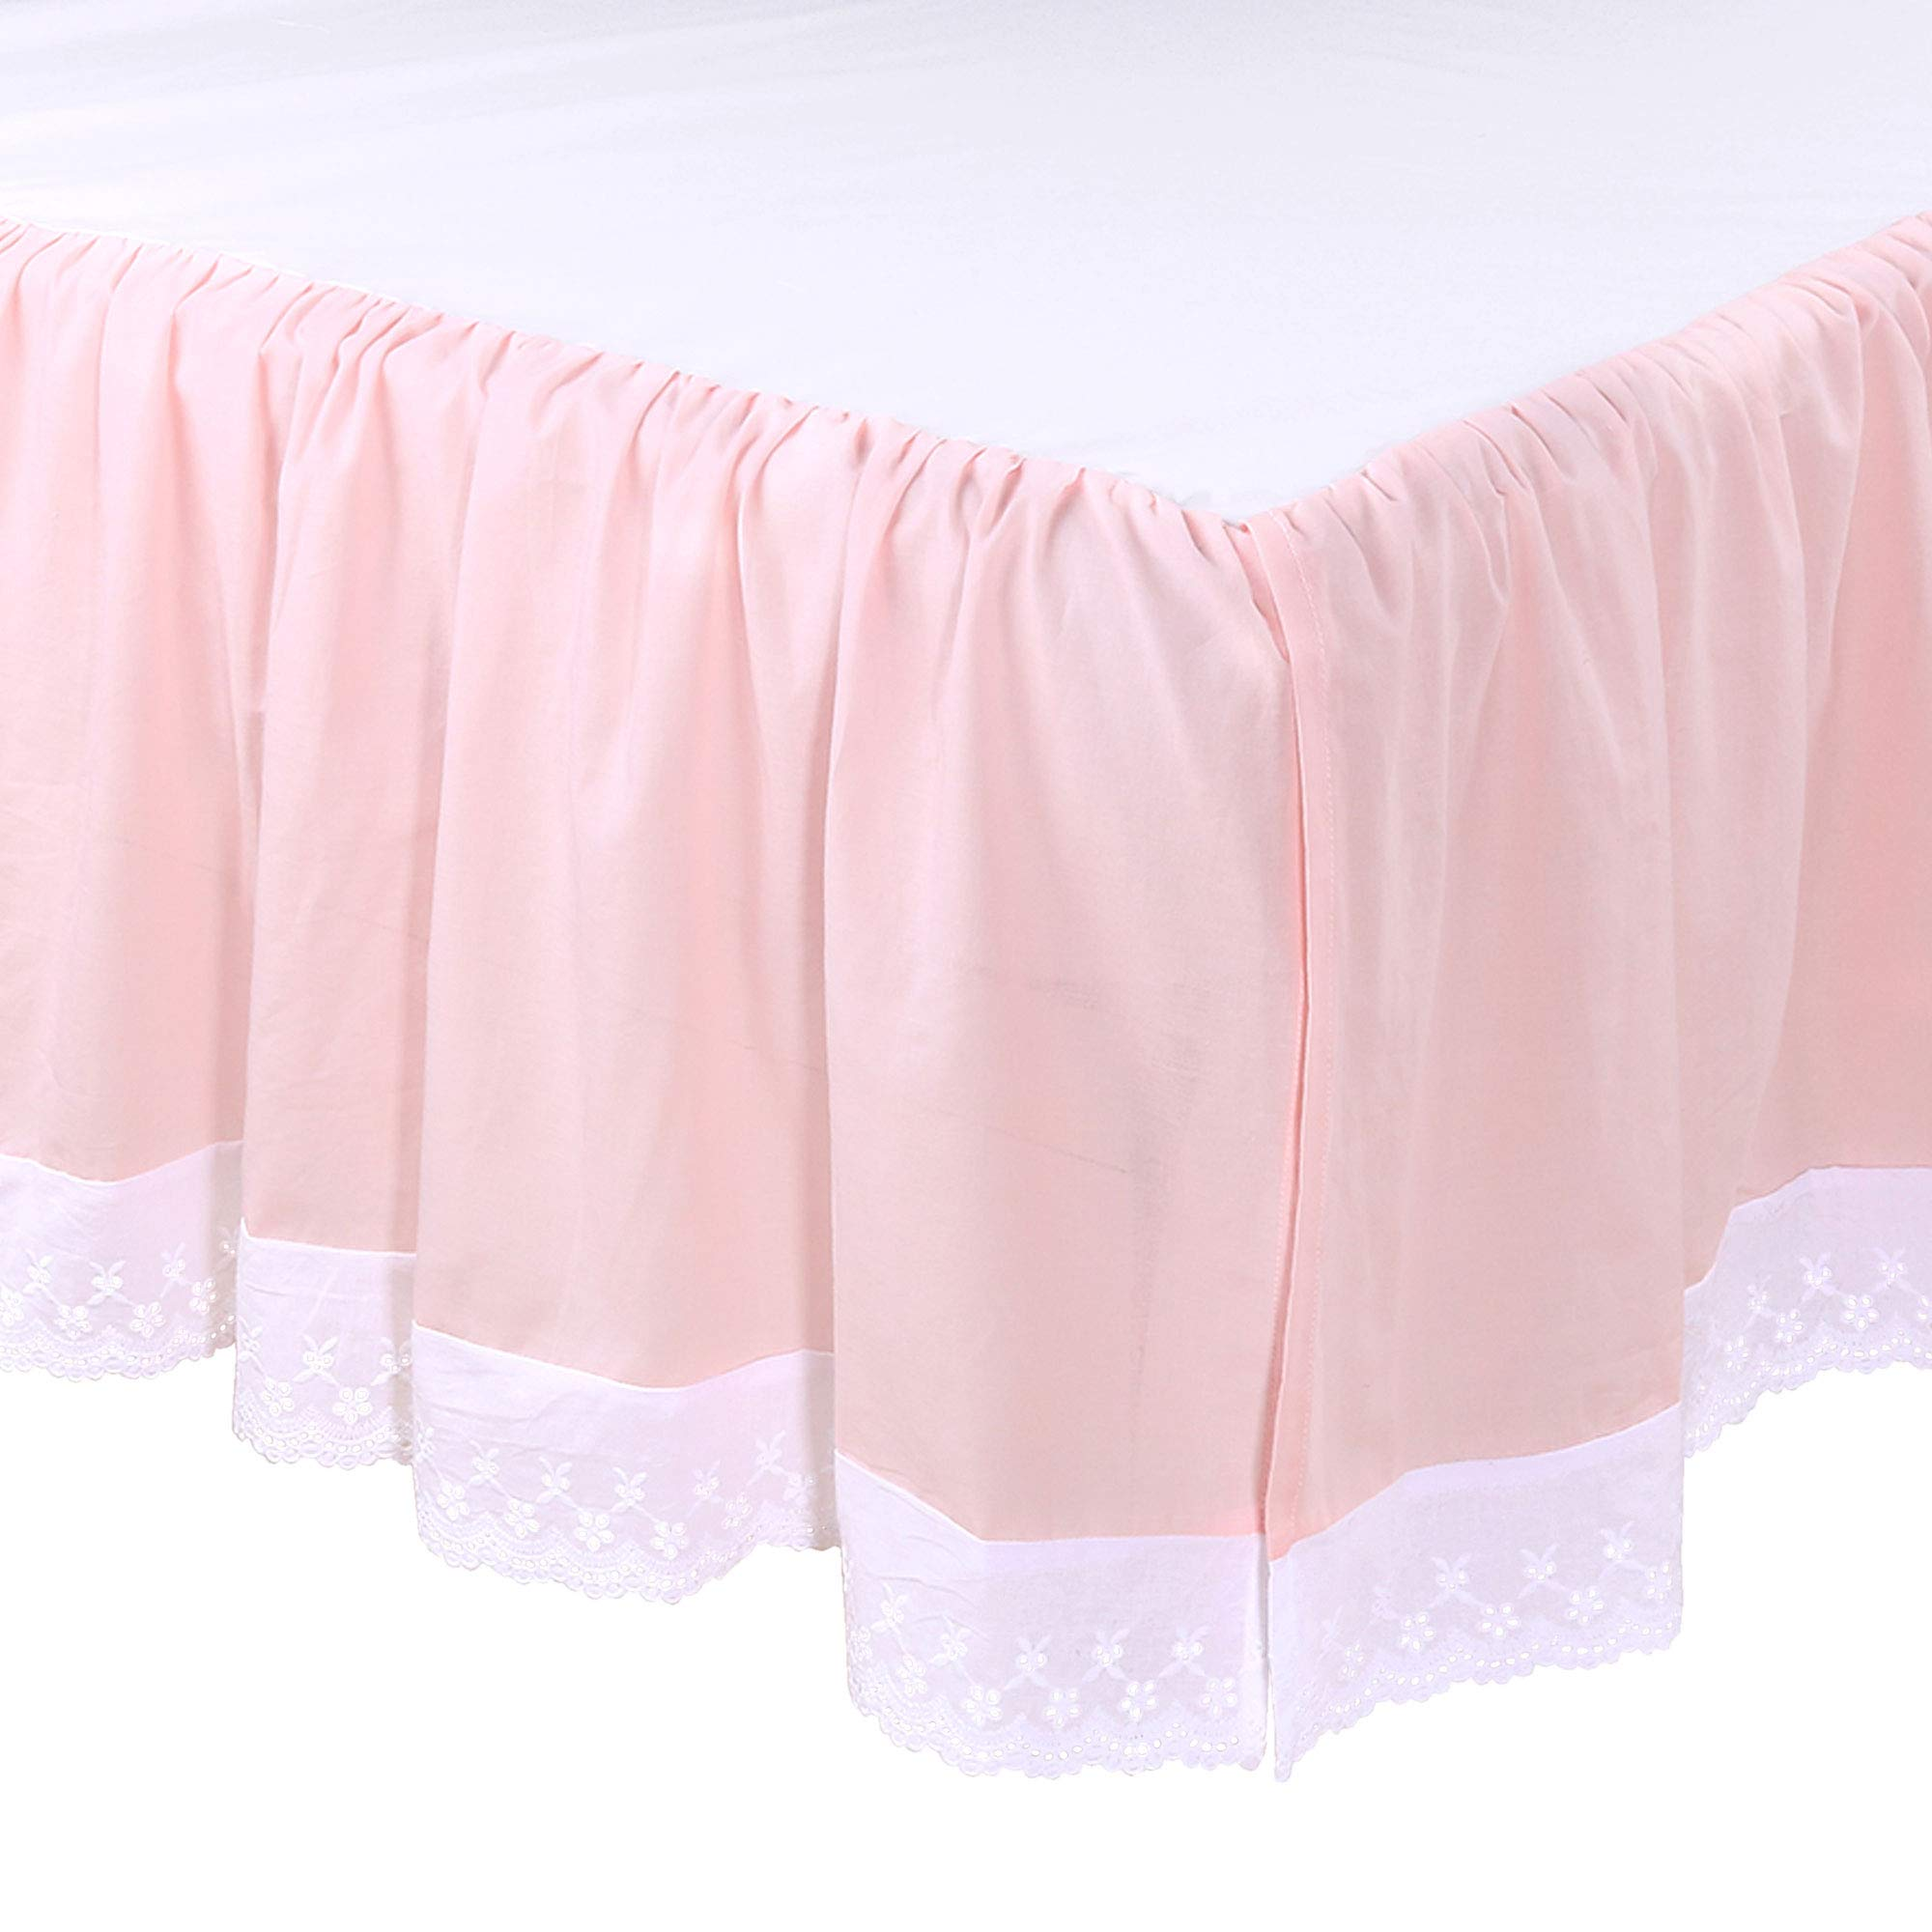 Farmhouse Pink Ruffled Baby Girl Crib Skirt - 100% Cotton Drop with White Eyelet by The Peanut Shell